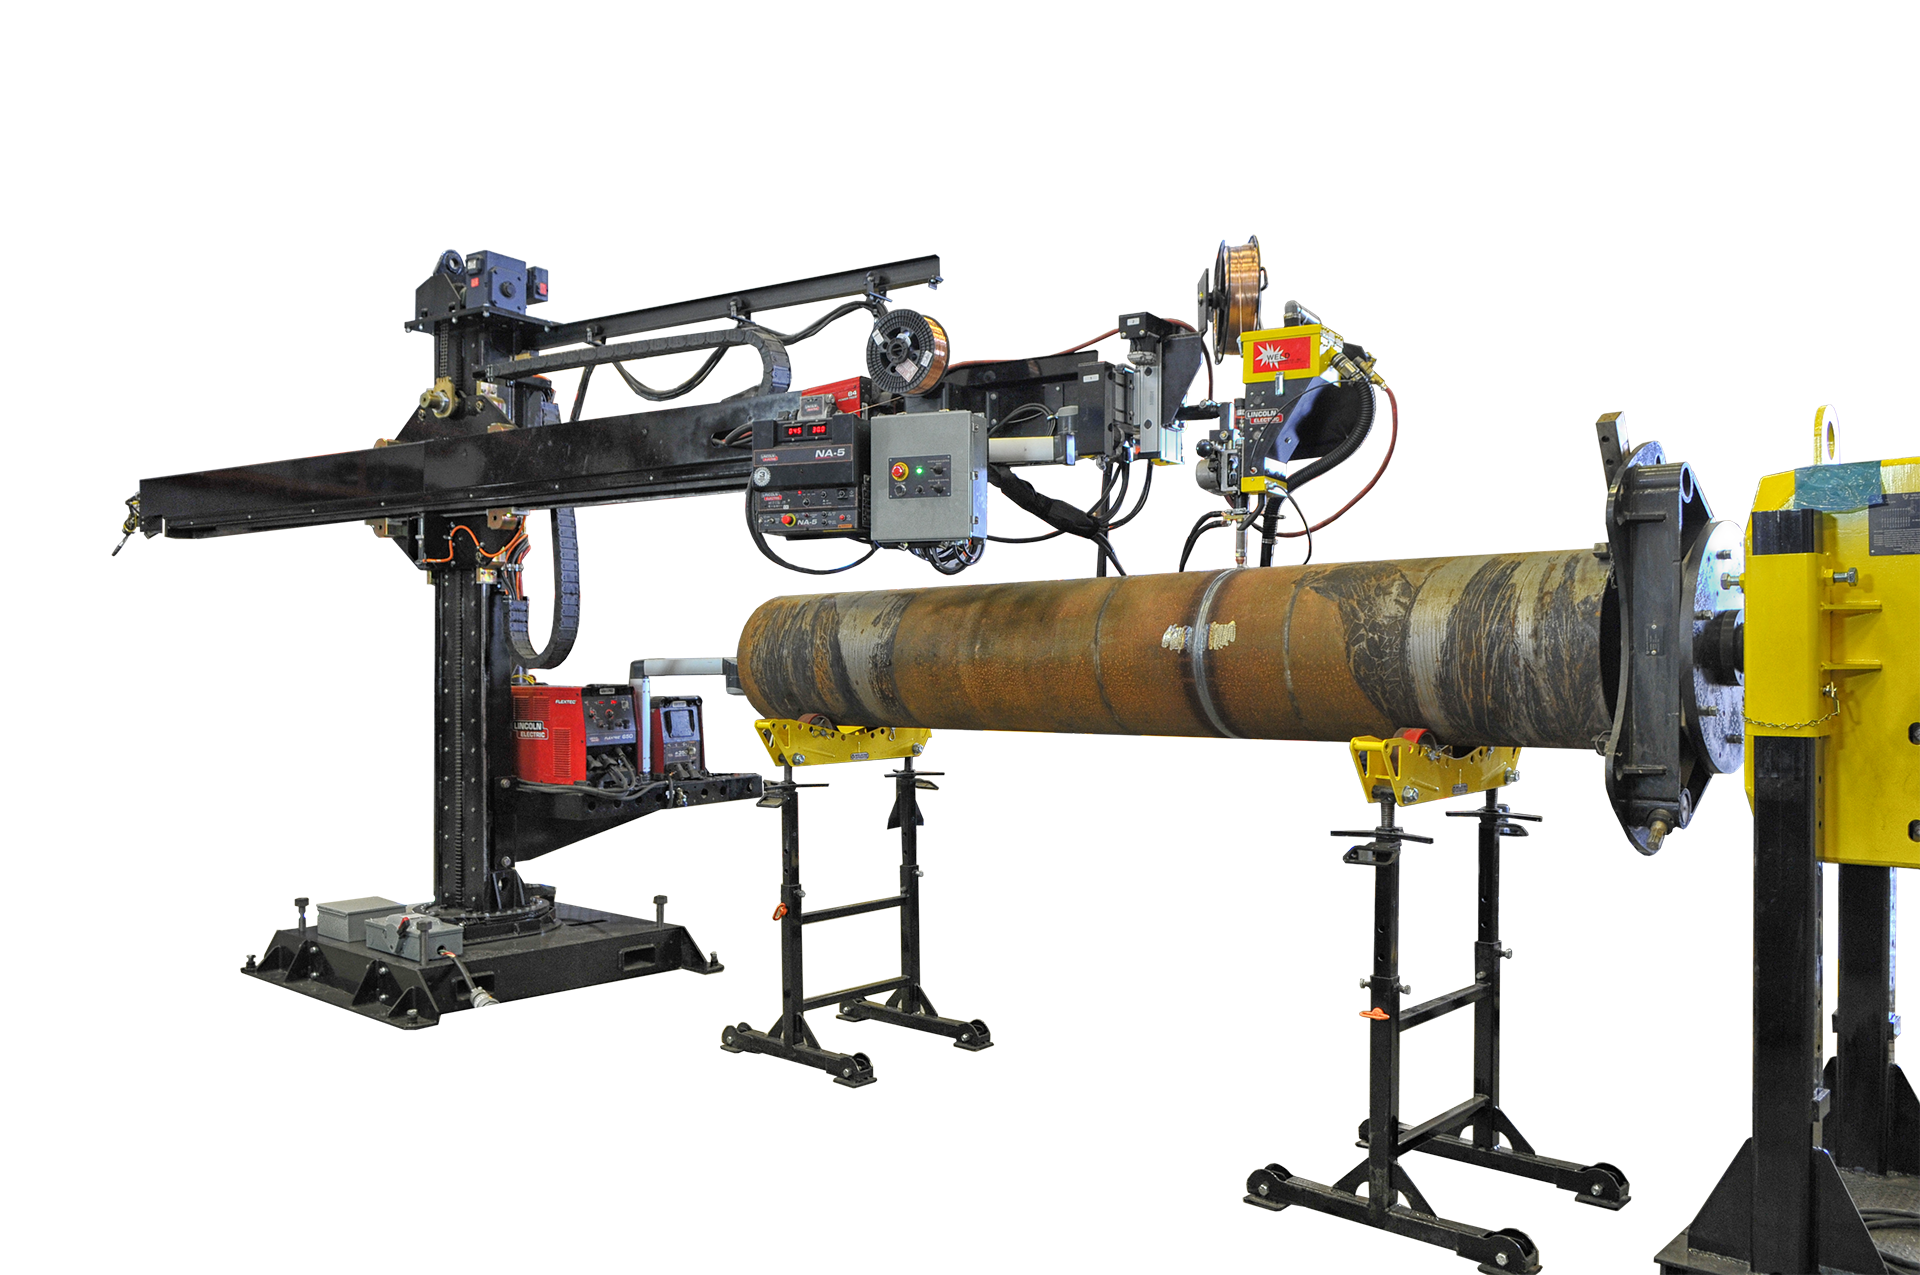 welding manipulator with weld positioner and pipe stand